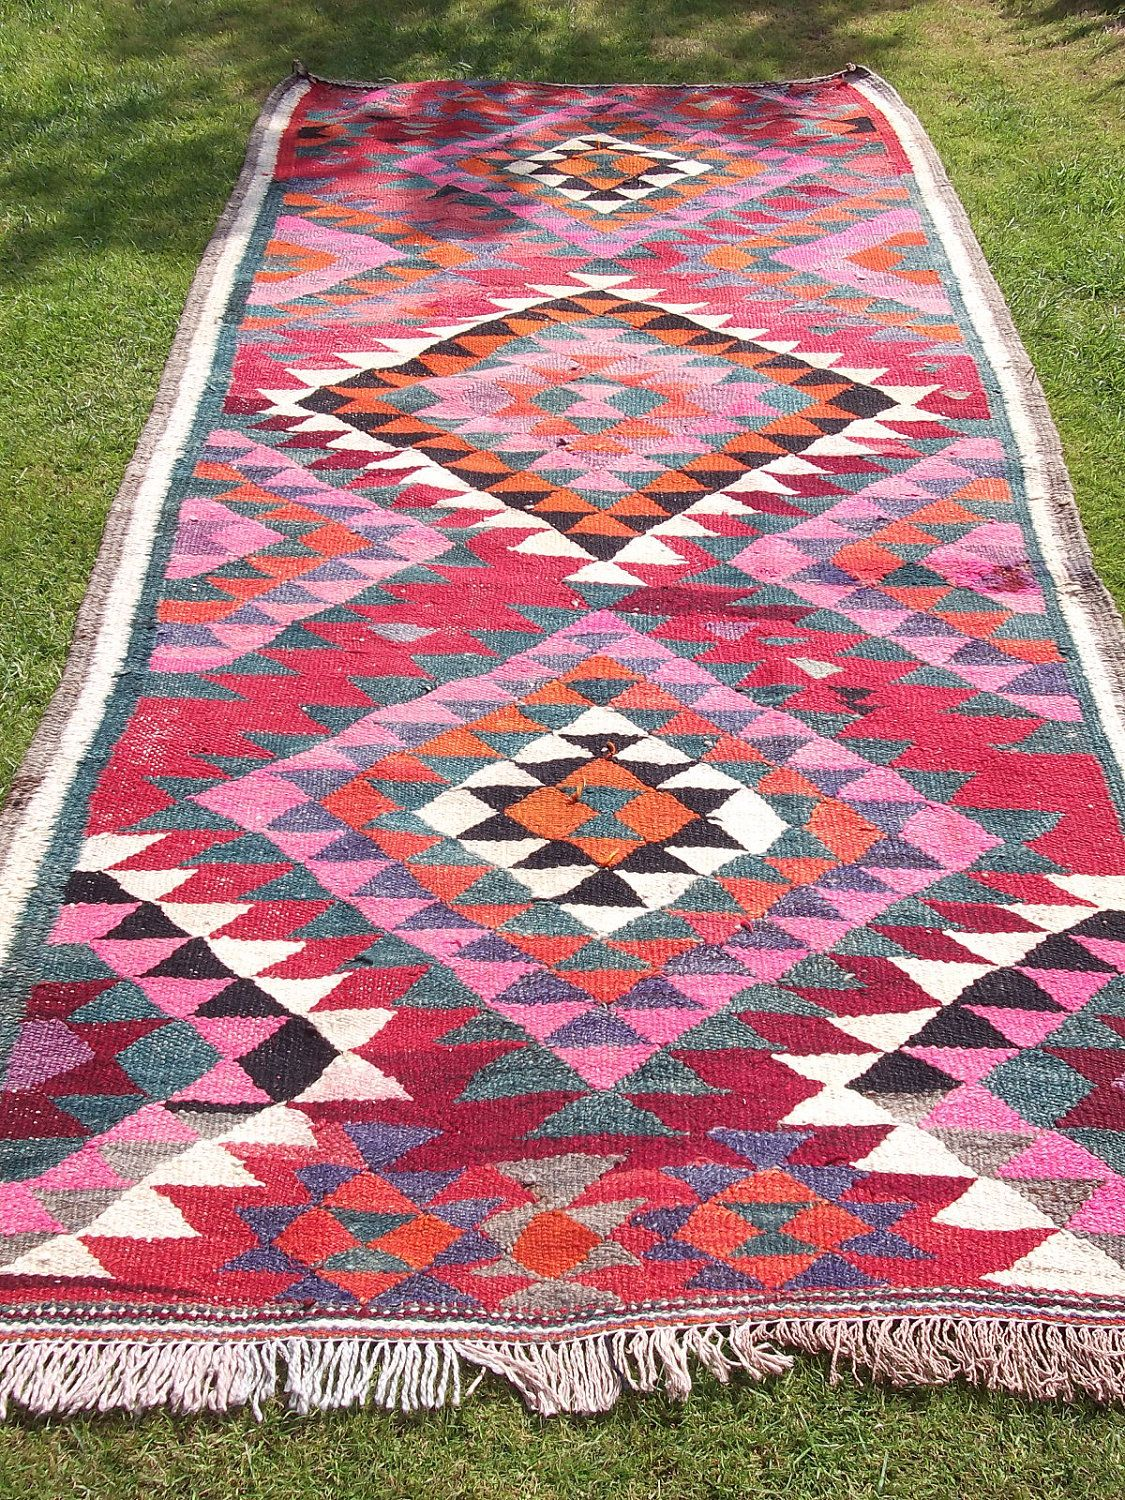 Woven Rug Runner Home Decor